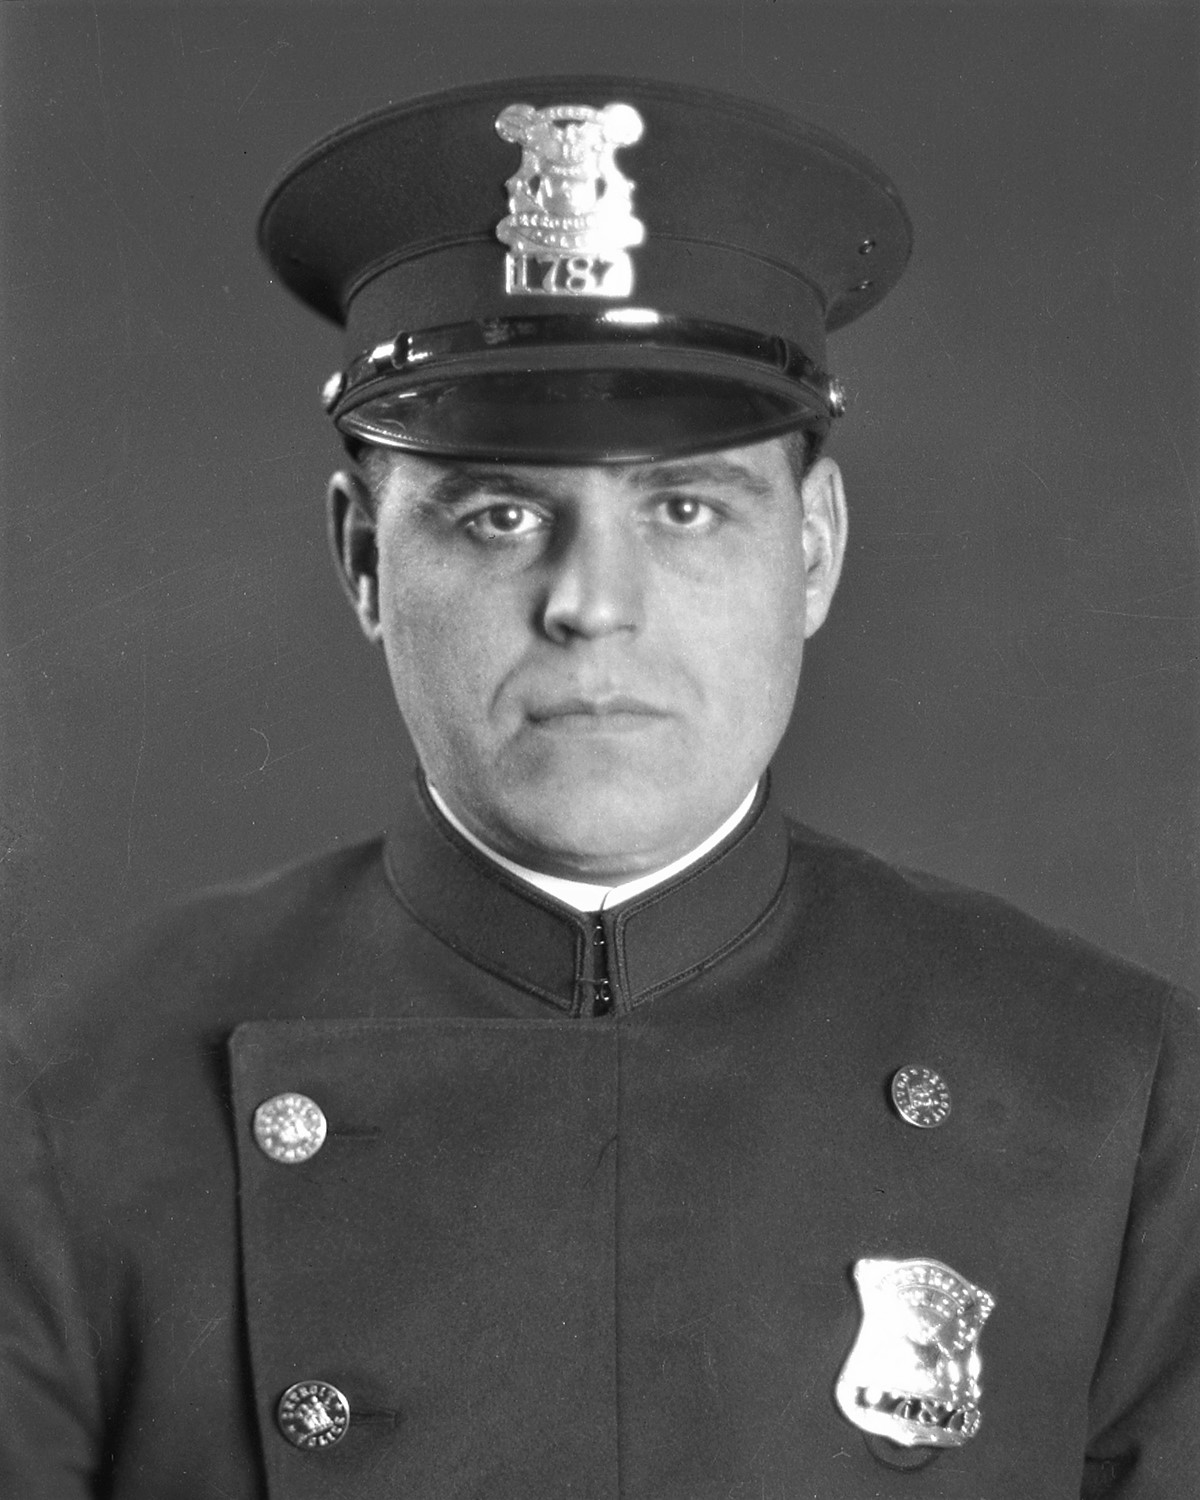 Police Officer Arthur L. Pascolini | Detroit Police Department, Michigan